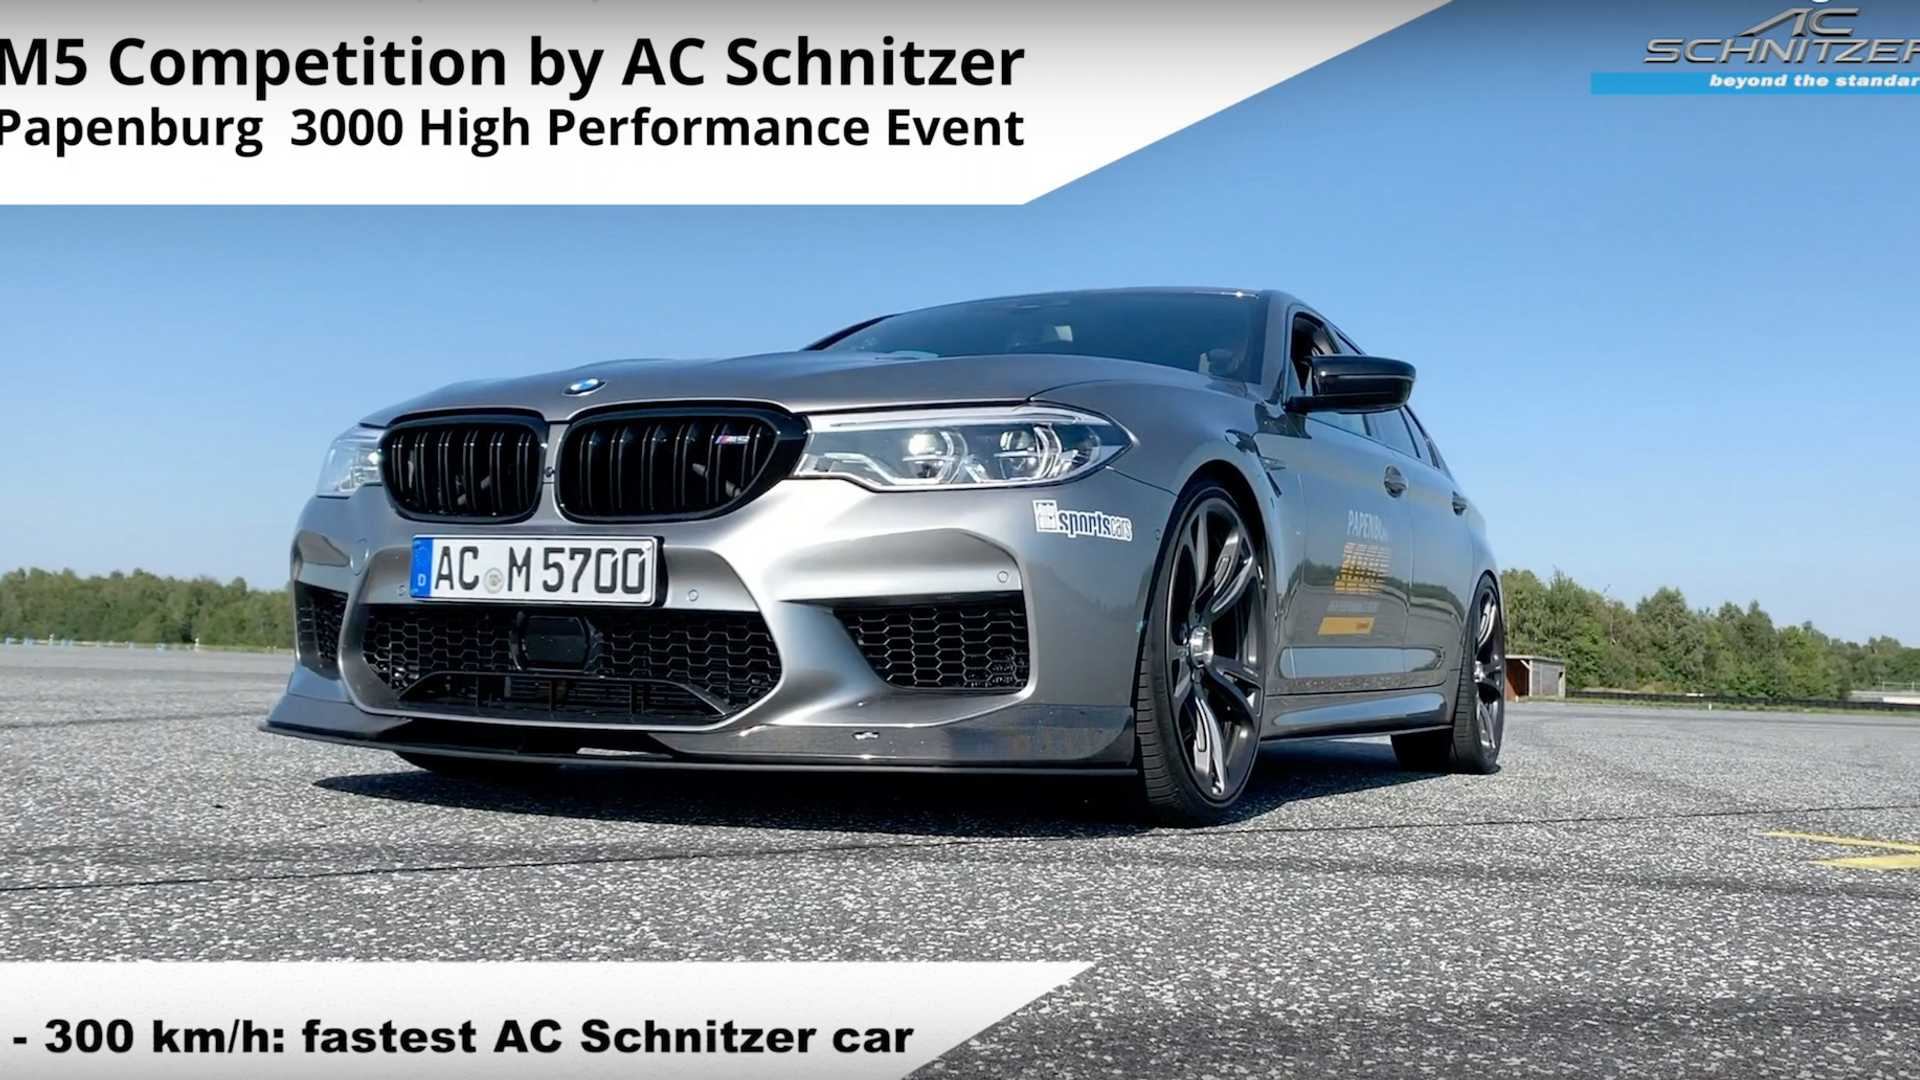 See BMW M5 Competition by AC Schnitzer rocket to 186 mph